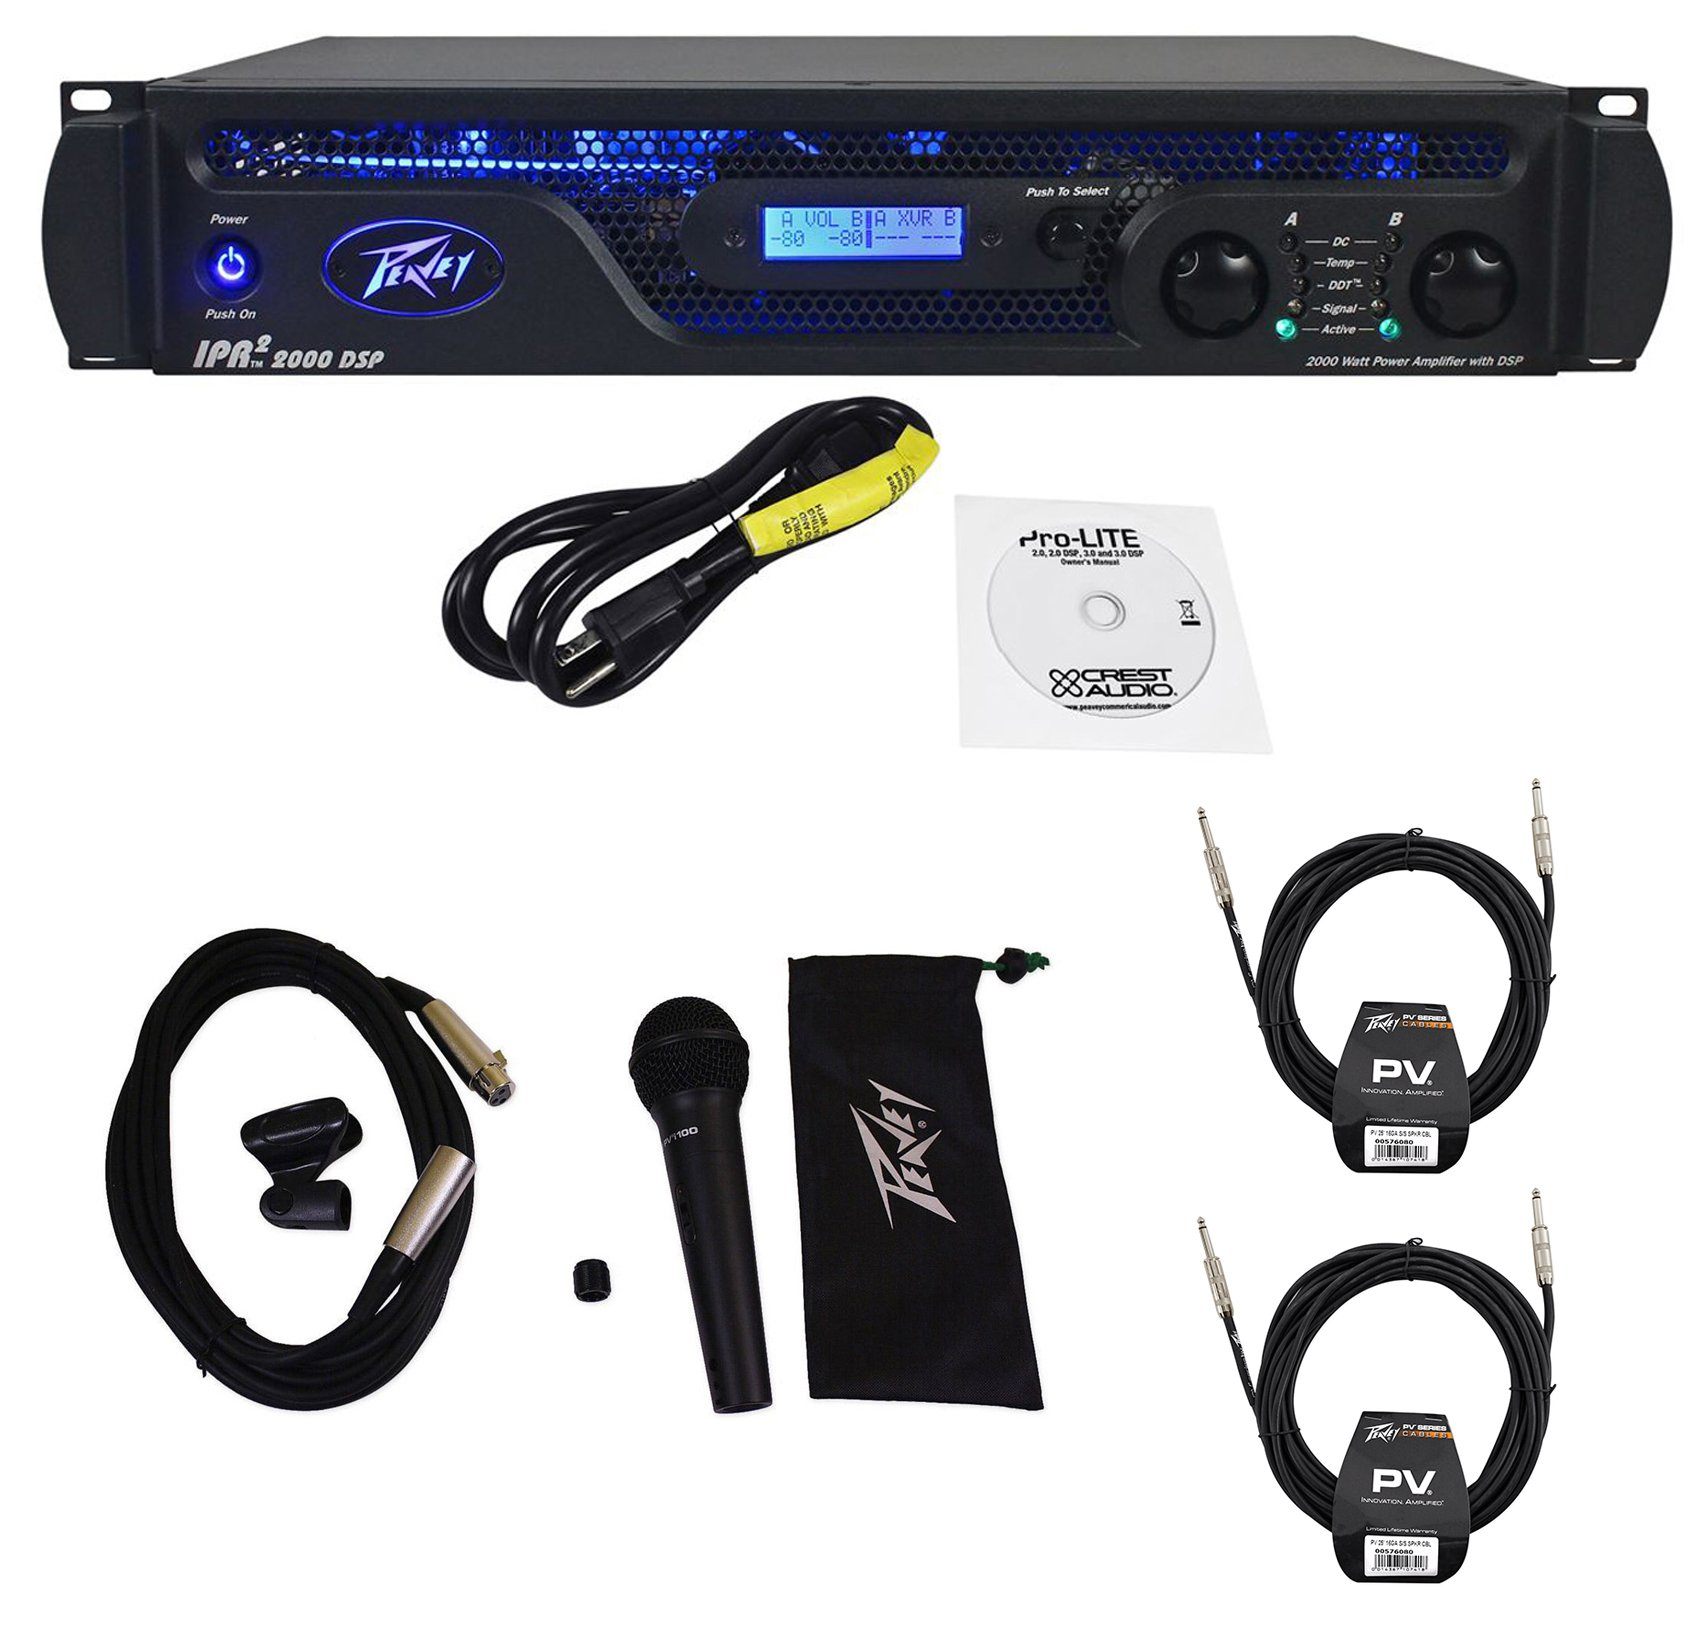 Peavey IPR2 2000 DSP 1,800Watts Power Amplifier w/EQ, Crossover+Mic + (2) Cables by Peavey